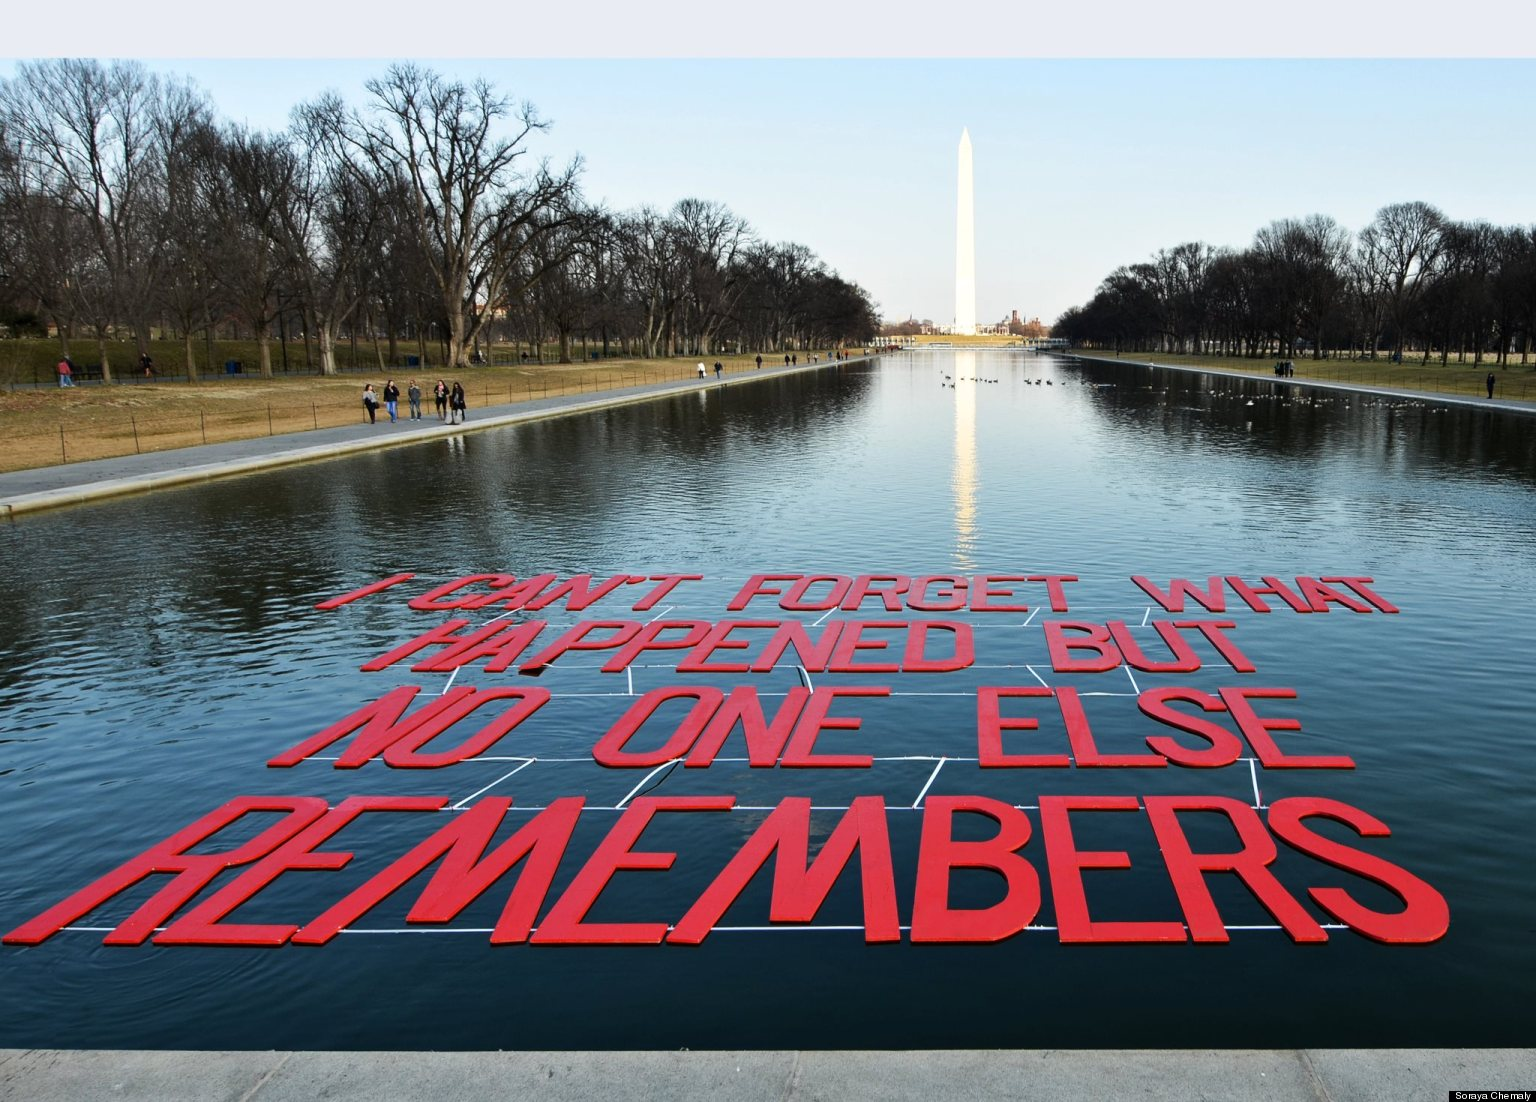 39 i can 39 t forget what happens but no one else remembers - Reflecting pool ...